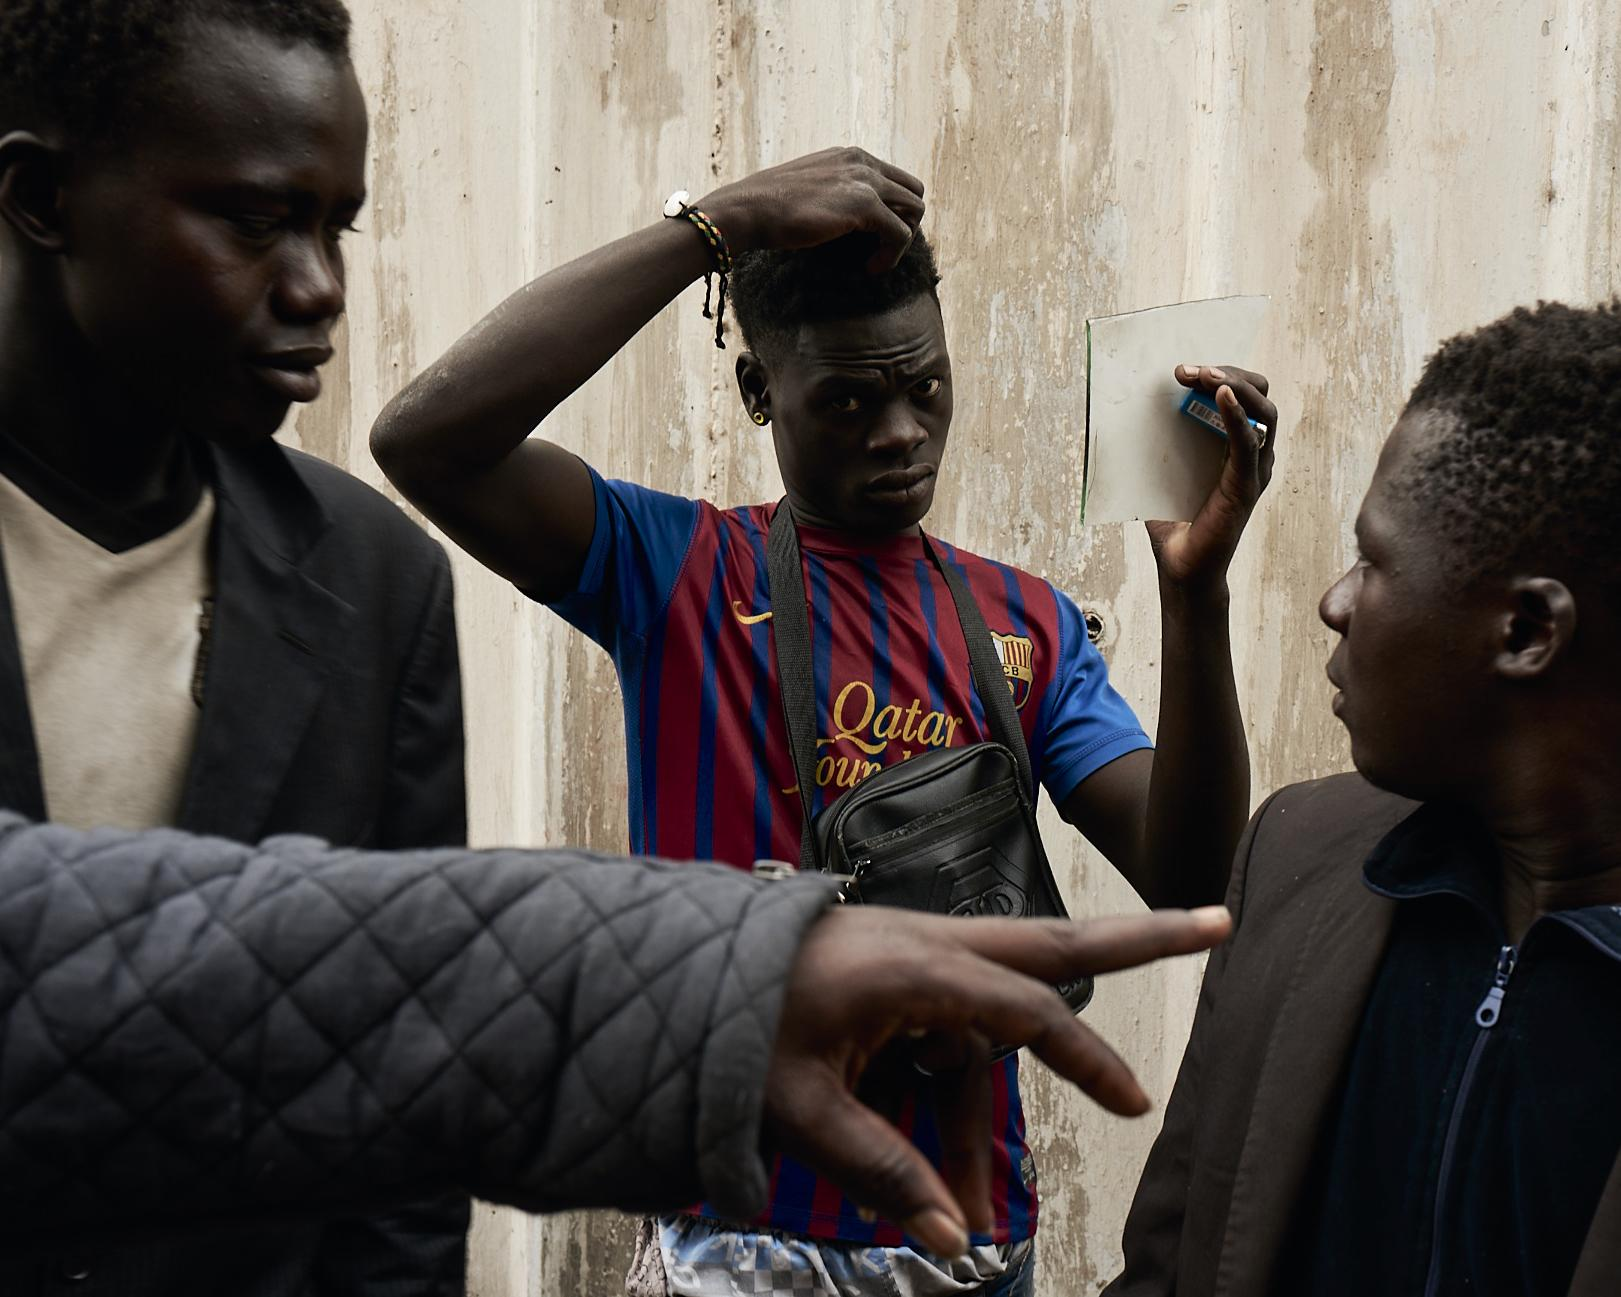 A group of young boys prepares themselves for an individual portrait session, that after went sent as a photo-postcard to their families who have lost contact since the beginning of their journey. Casablanca, Morocco, 2019.